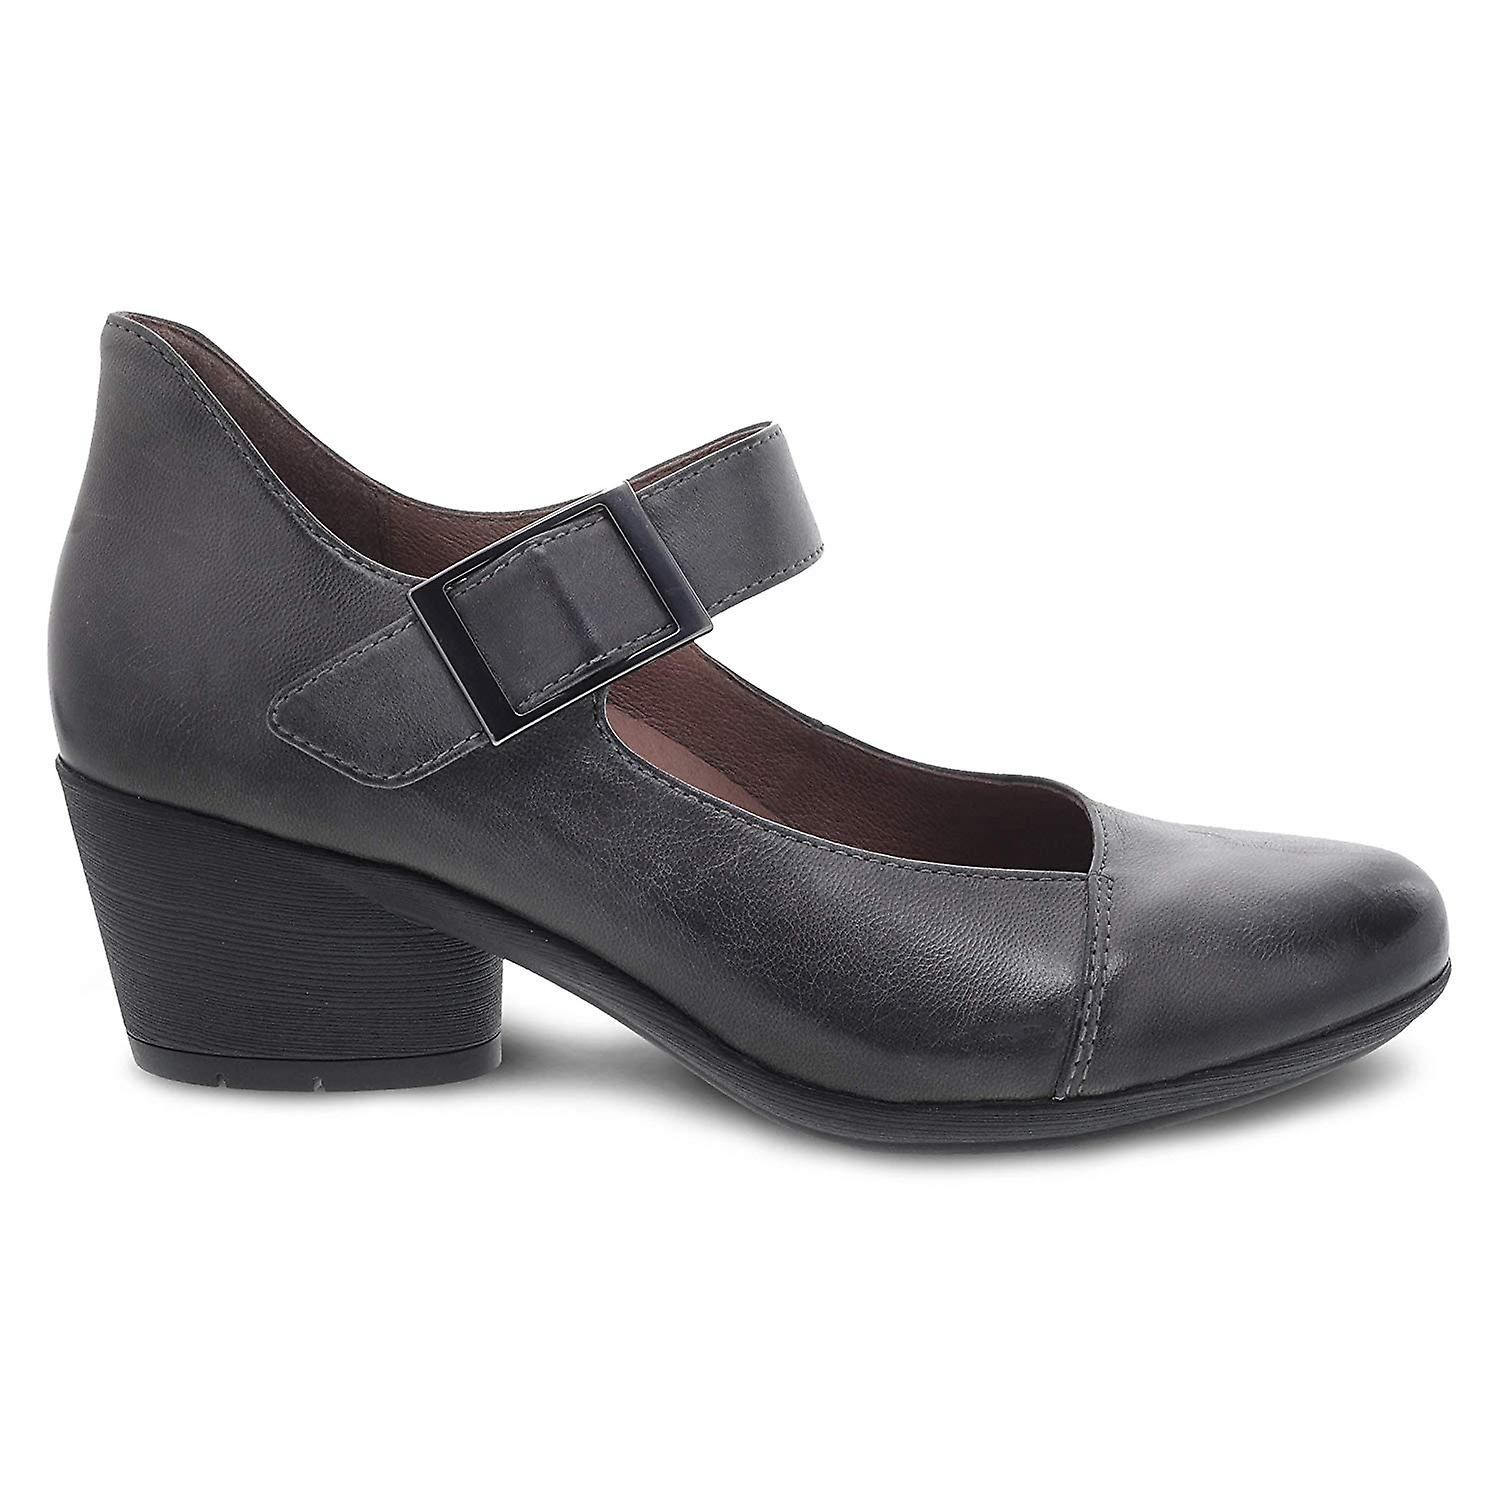 Lange high beine heels gro e bruste